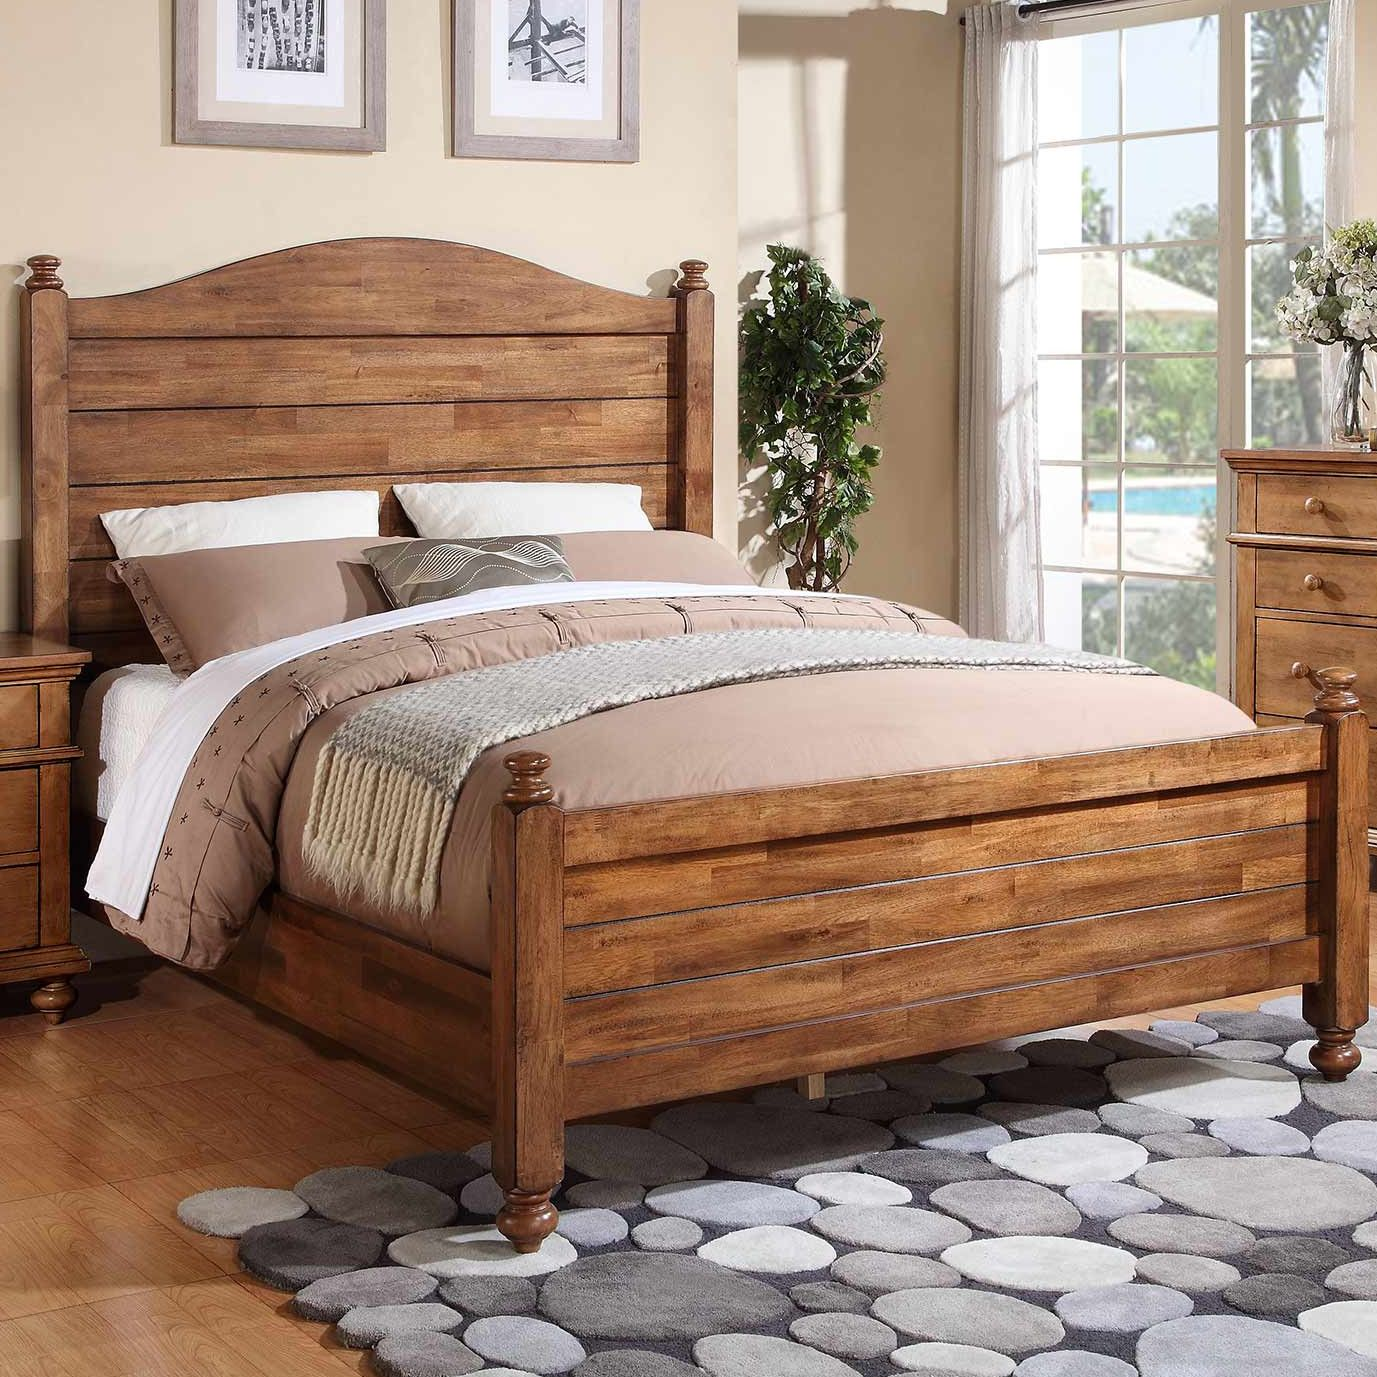 Customer Image Zoomed Panel bed, Adjustable beds, Furniture